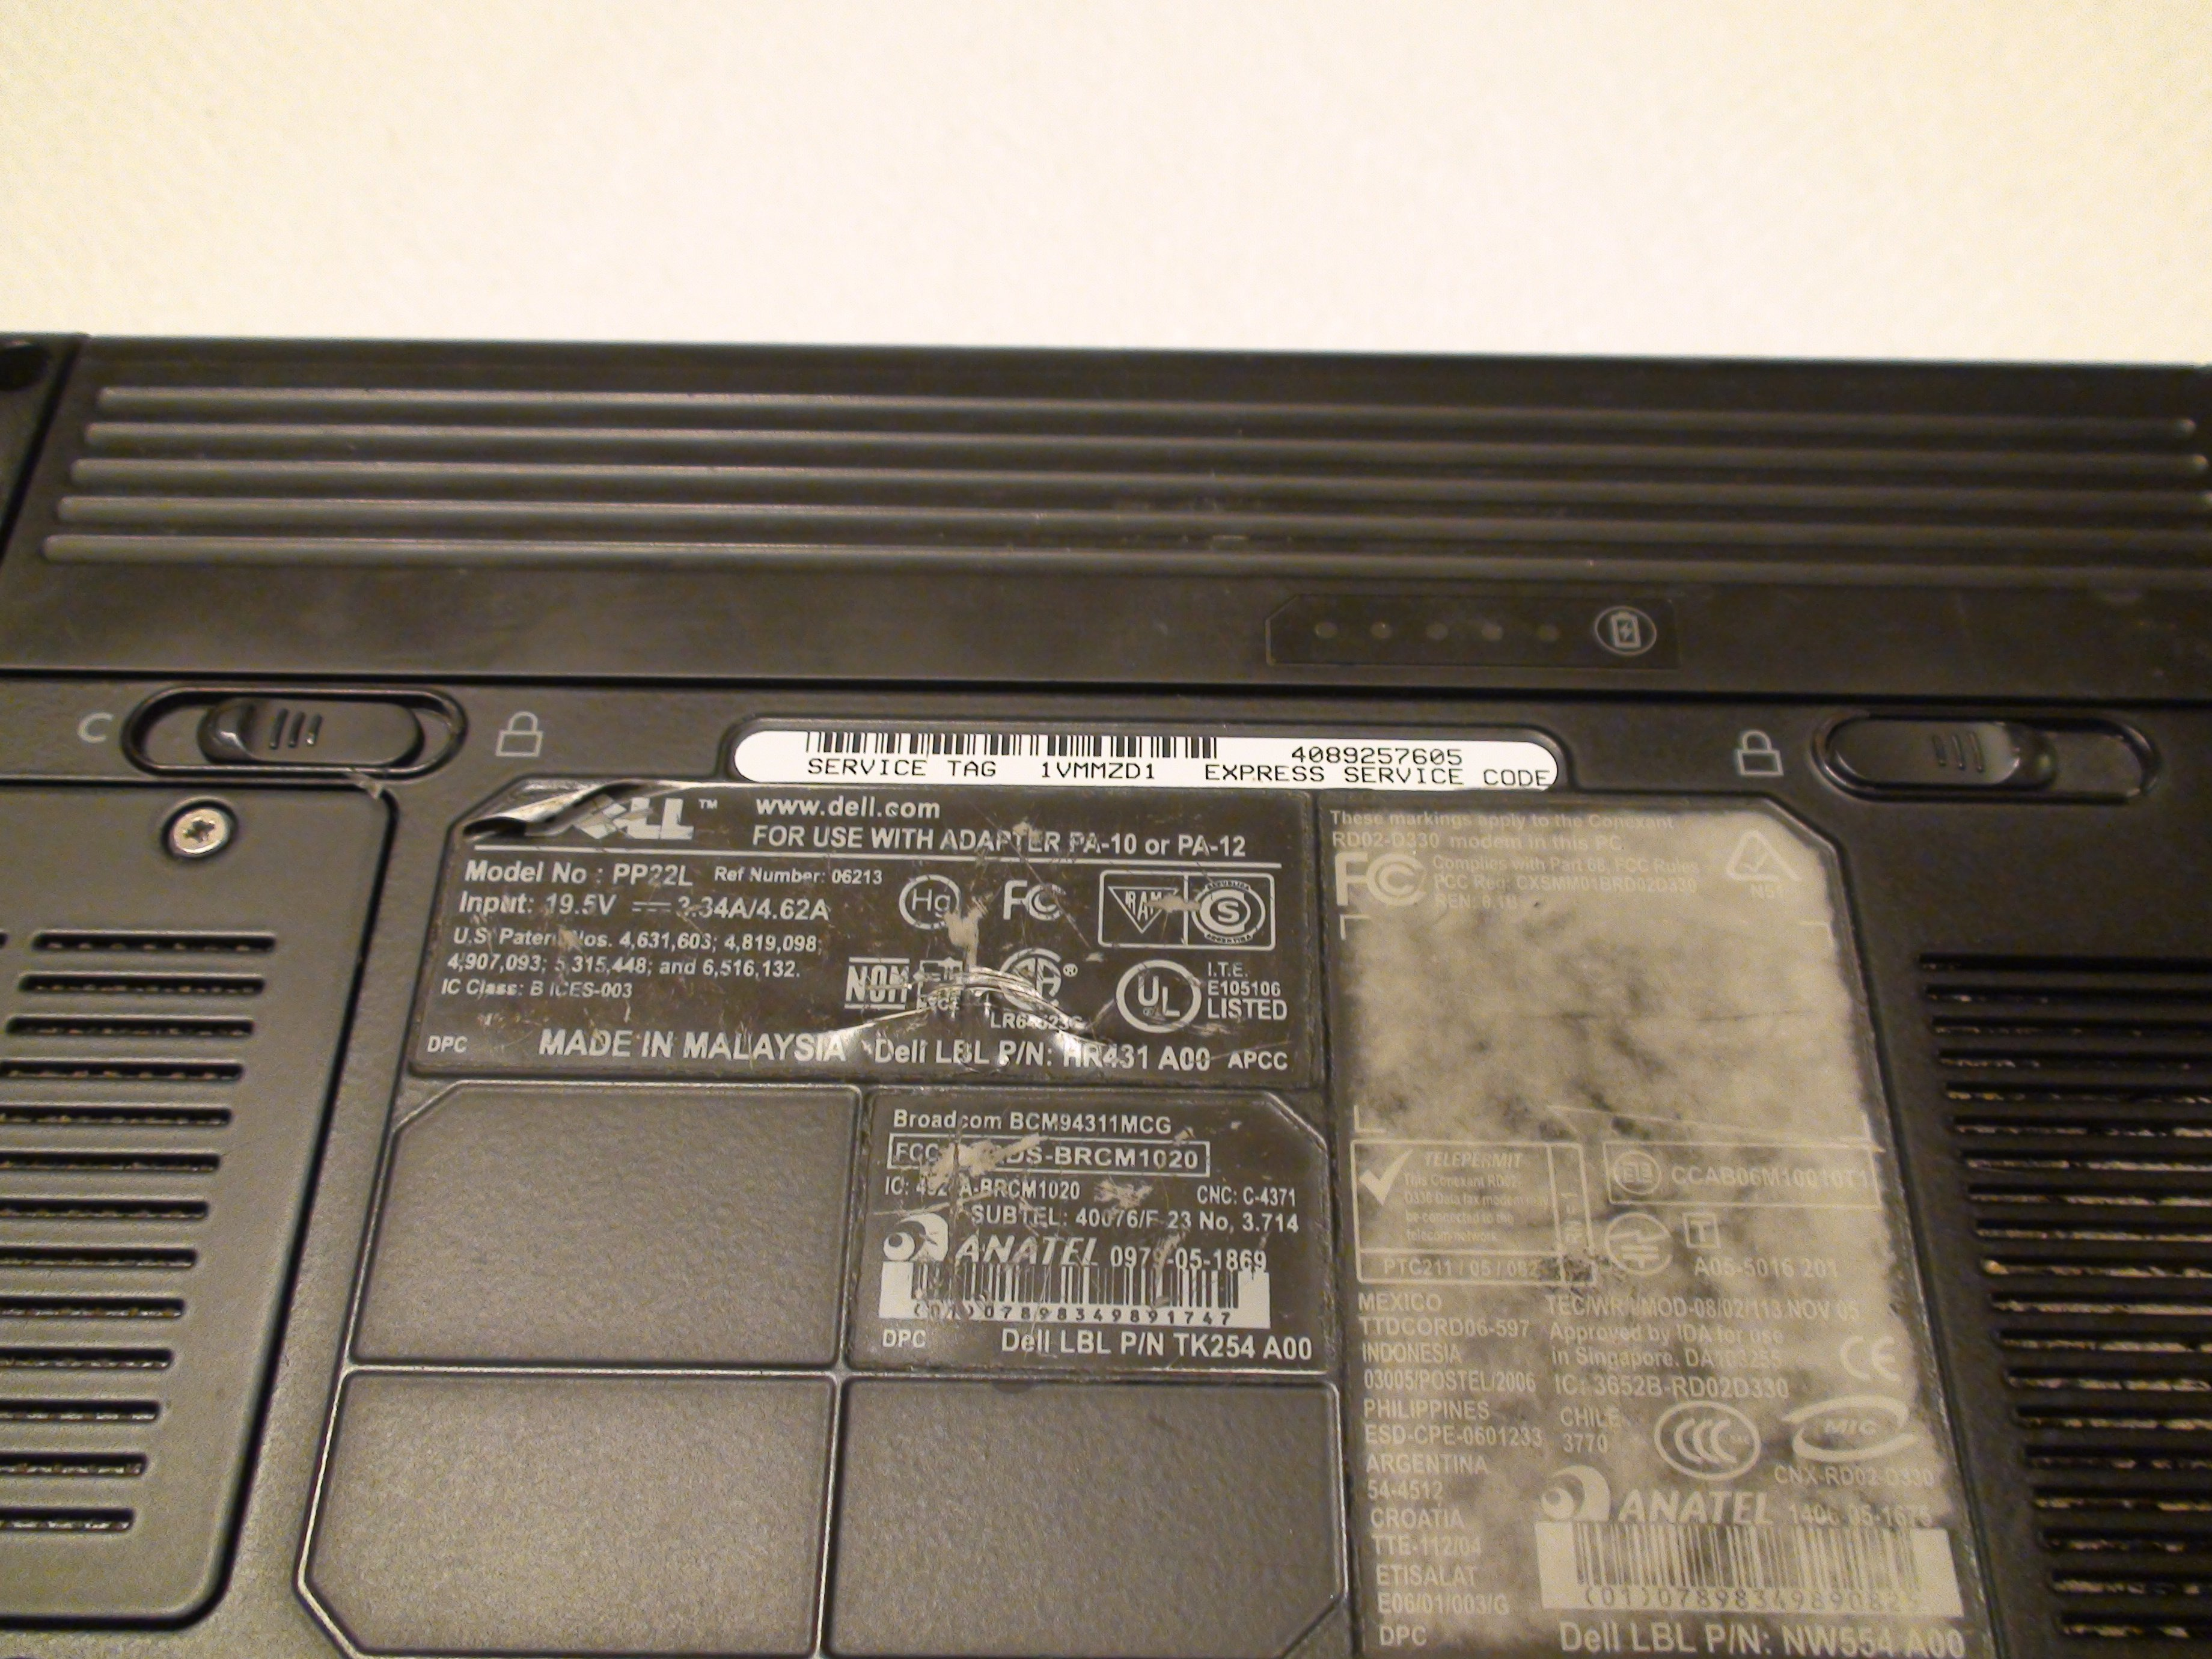 Dell Inspiron 1521 DVD Drive Replacement